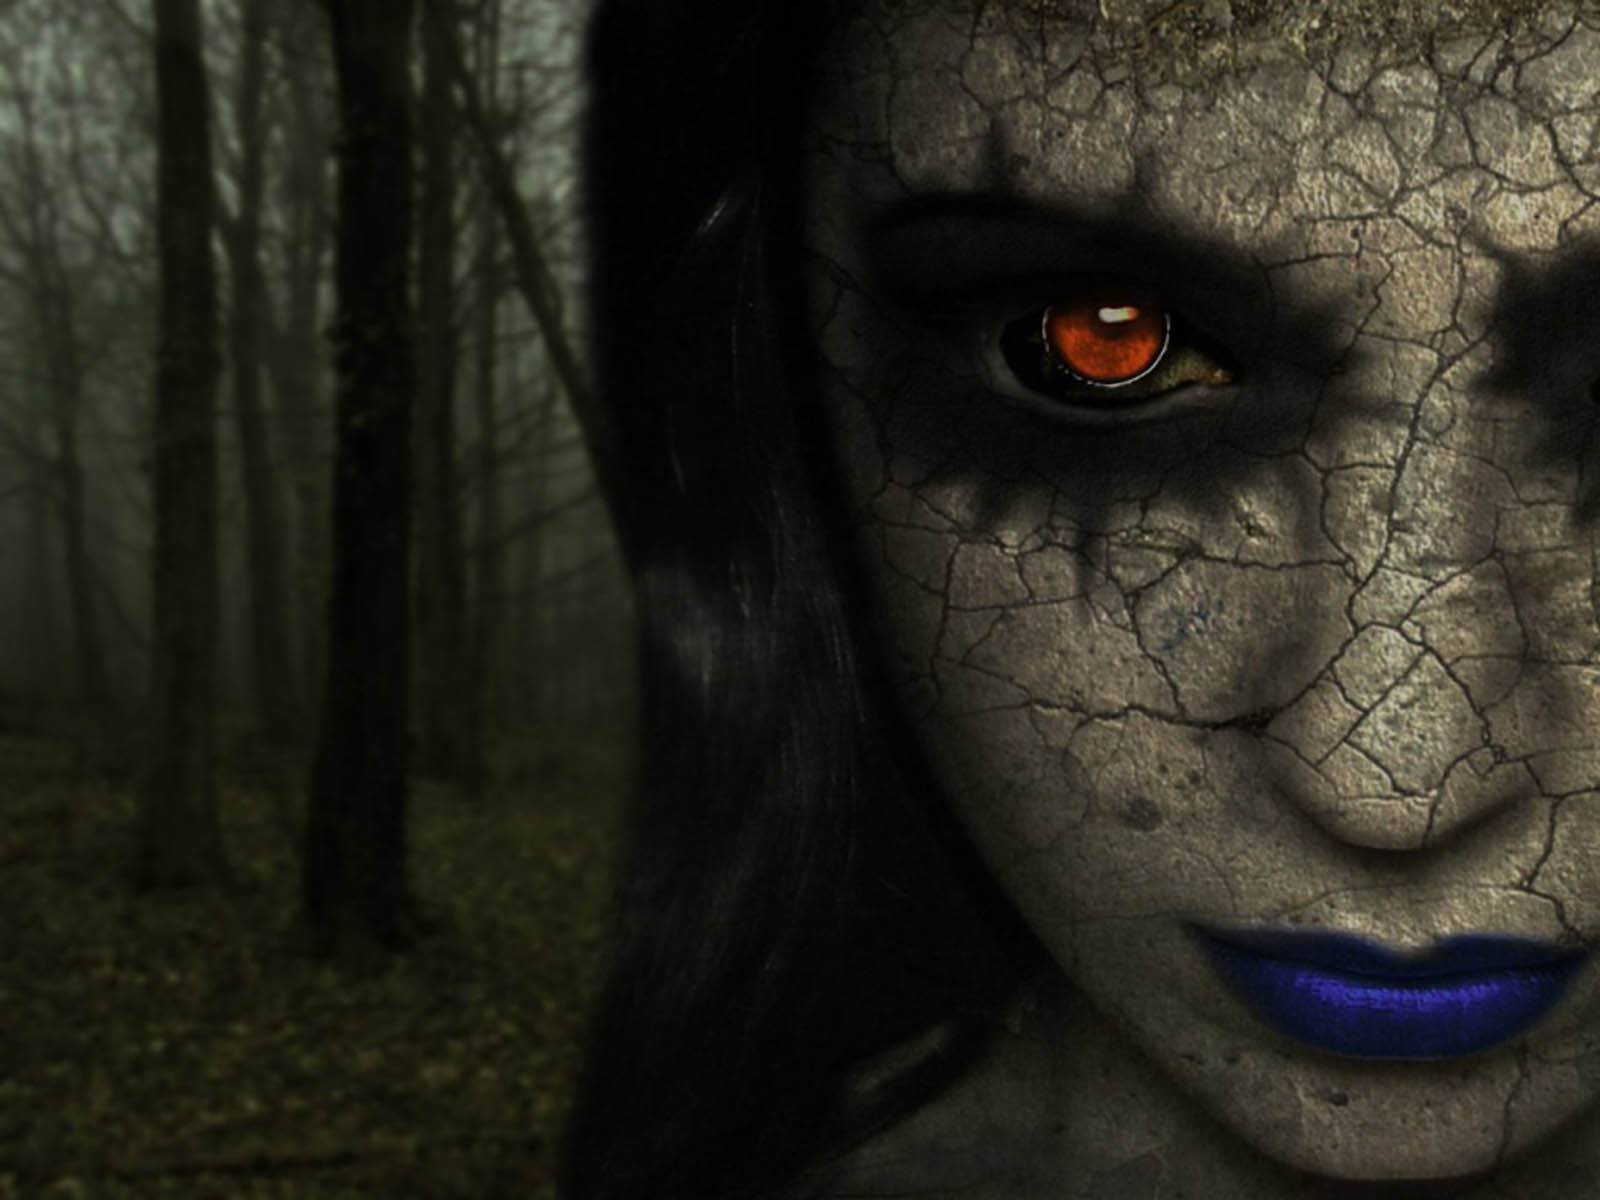 wallpapers Scary Horror Wallpapers 1600x1200